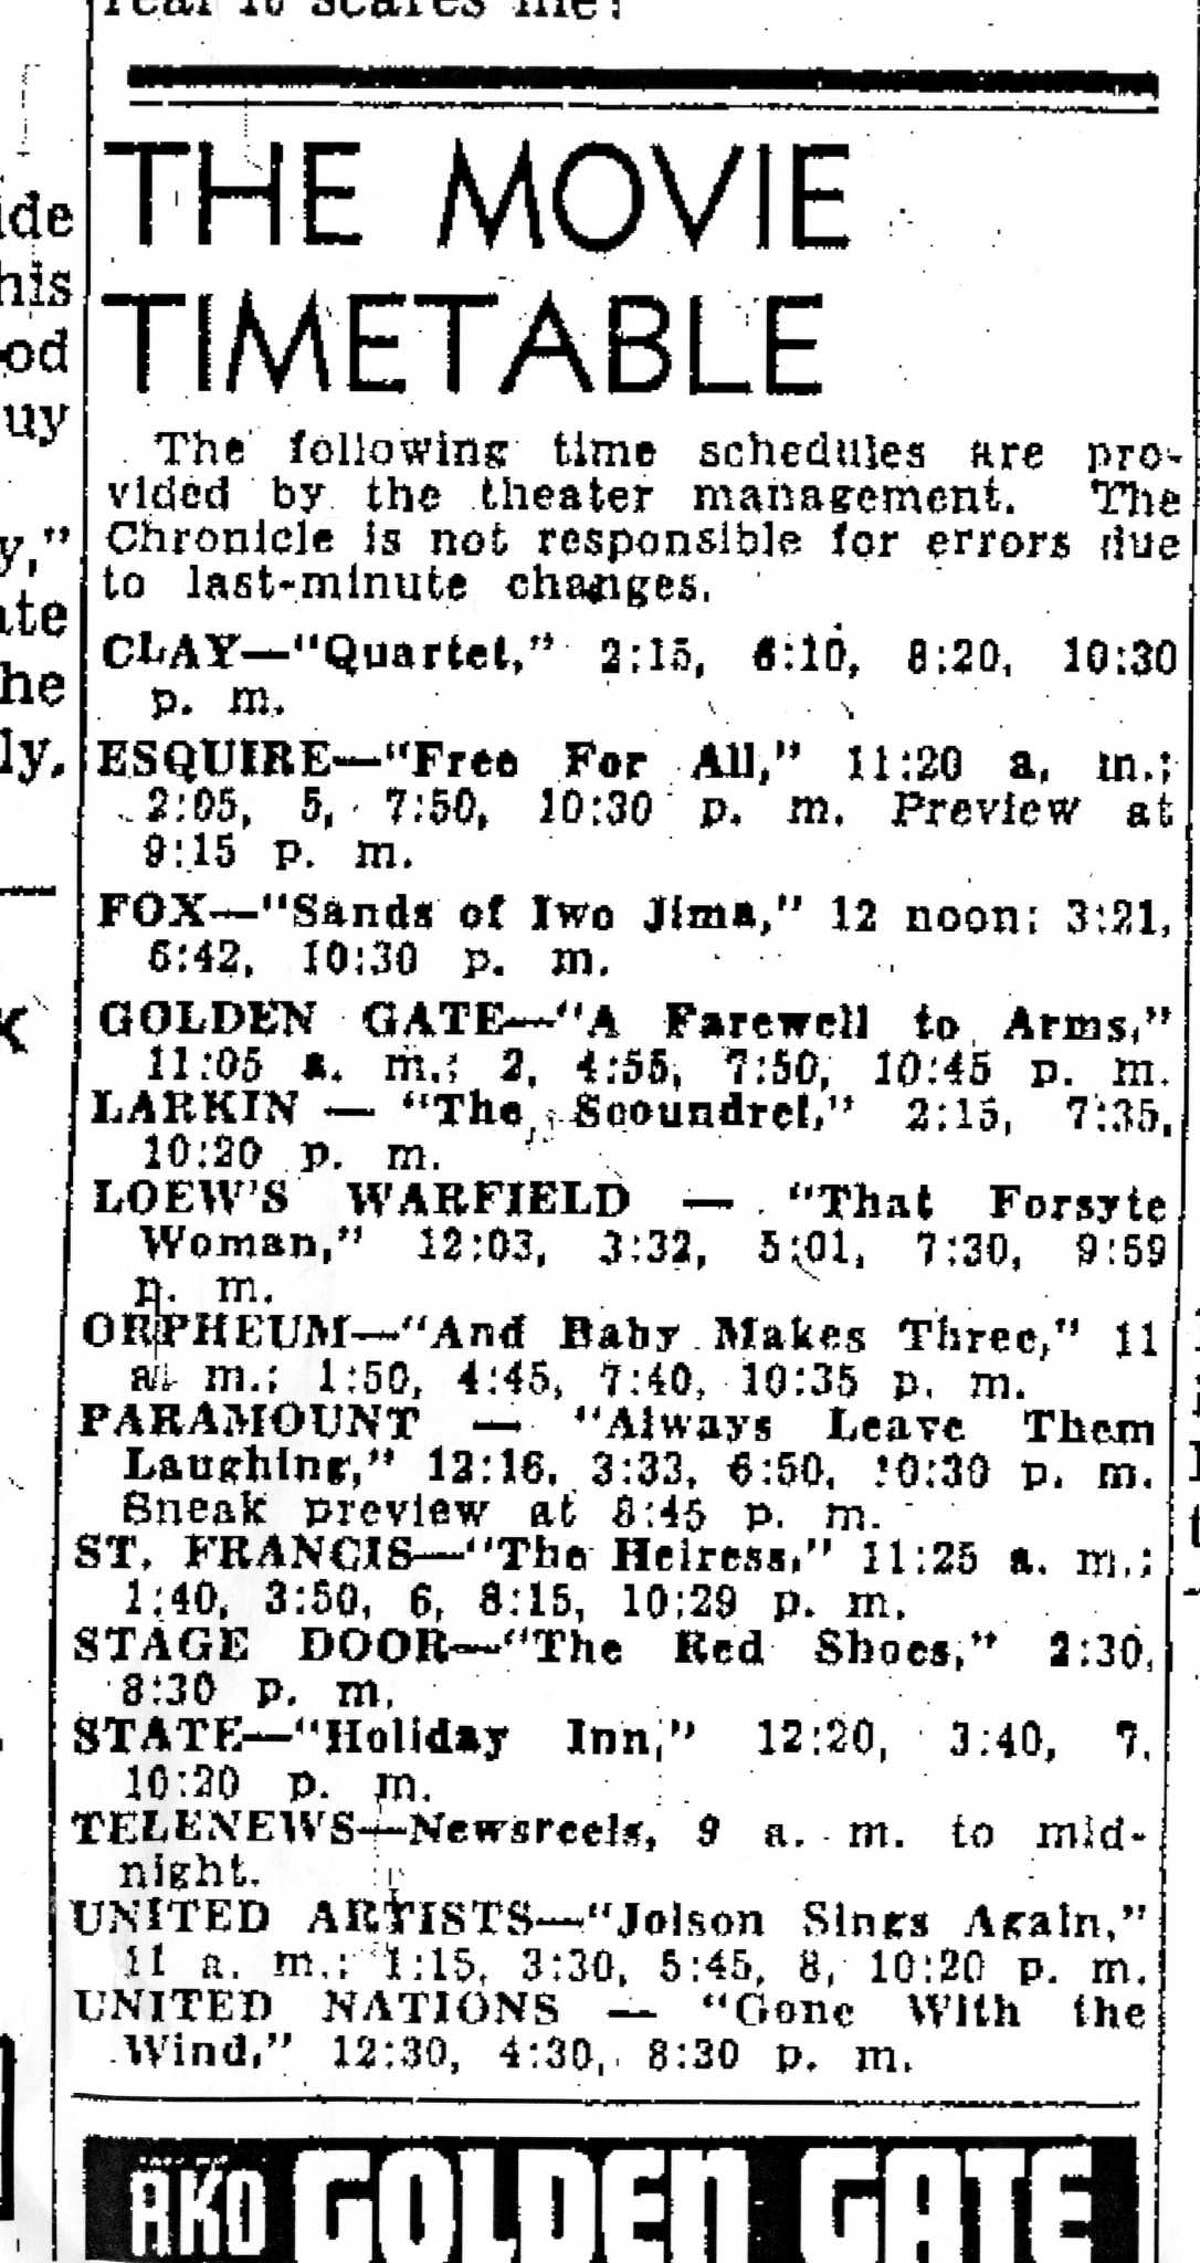 The San Francisco's movie timetable for Jan. 9, 1950, featuring mostly theaters on Market Street.